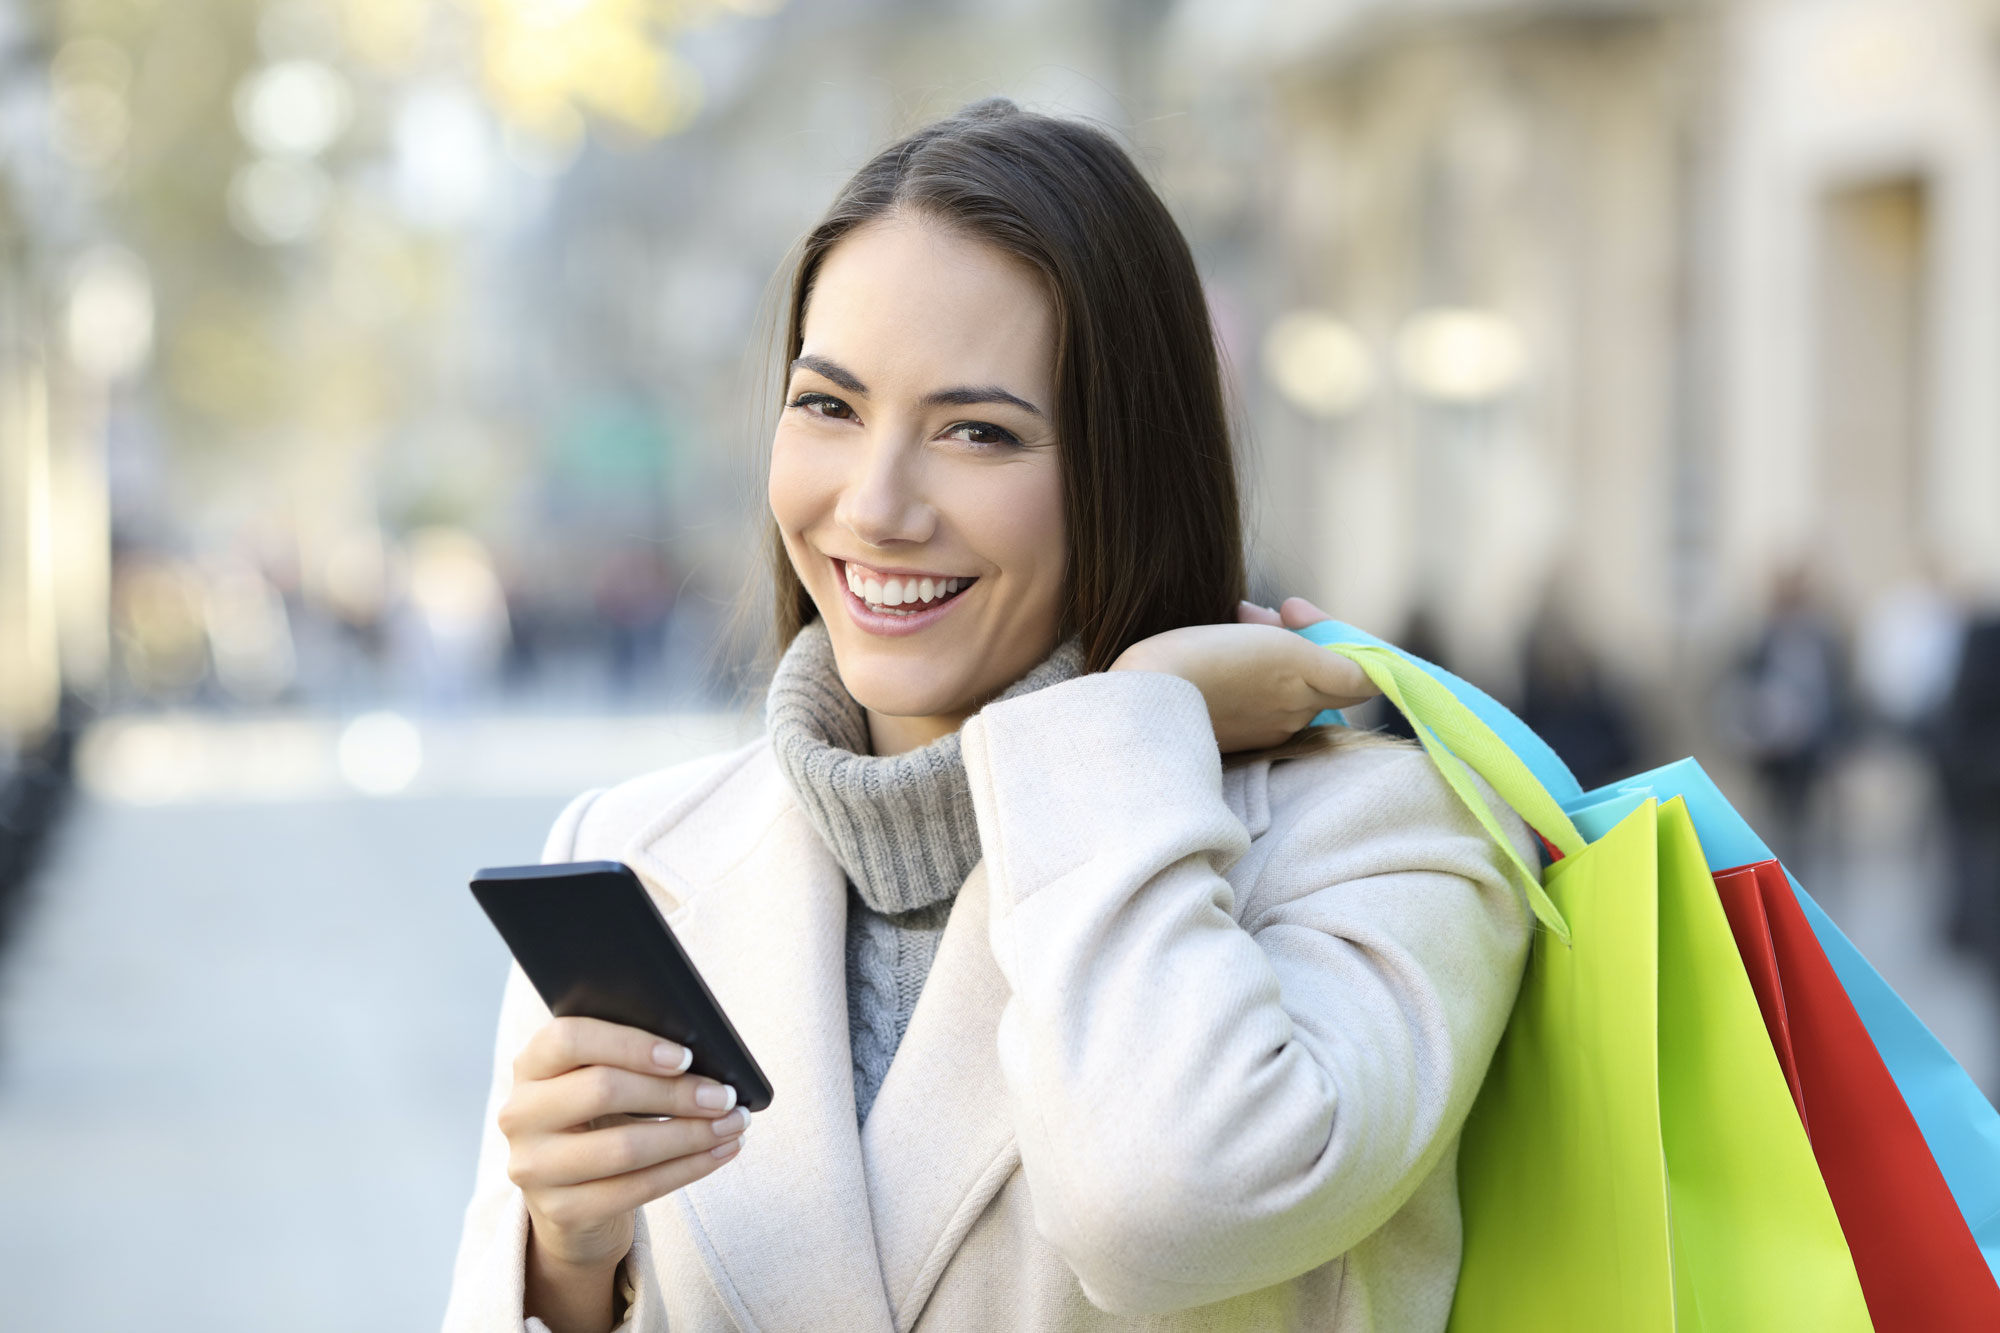 shopping digital sms